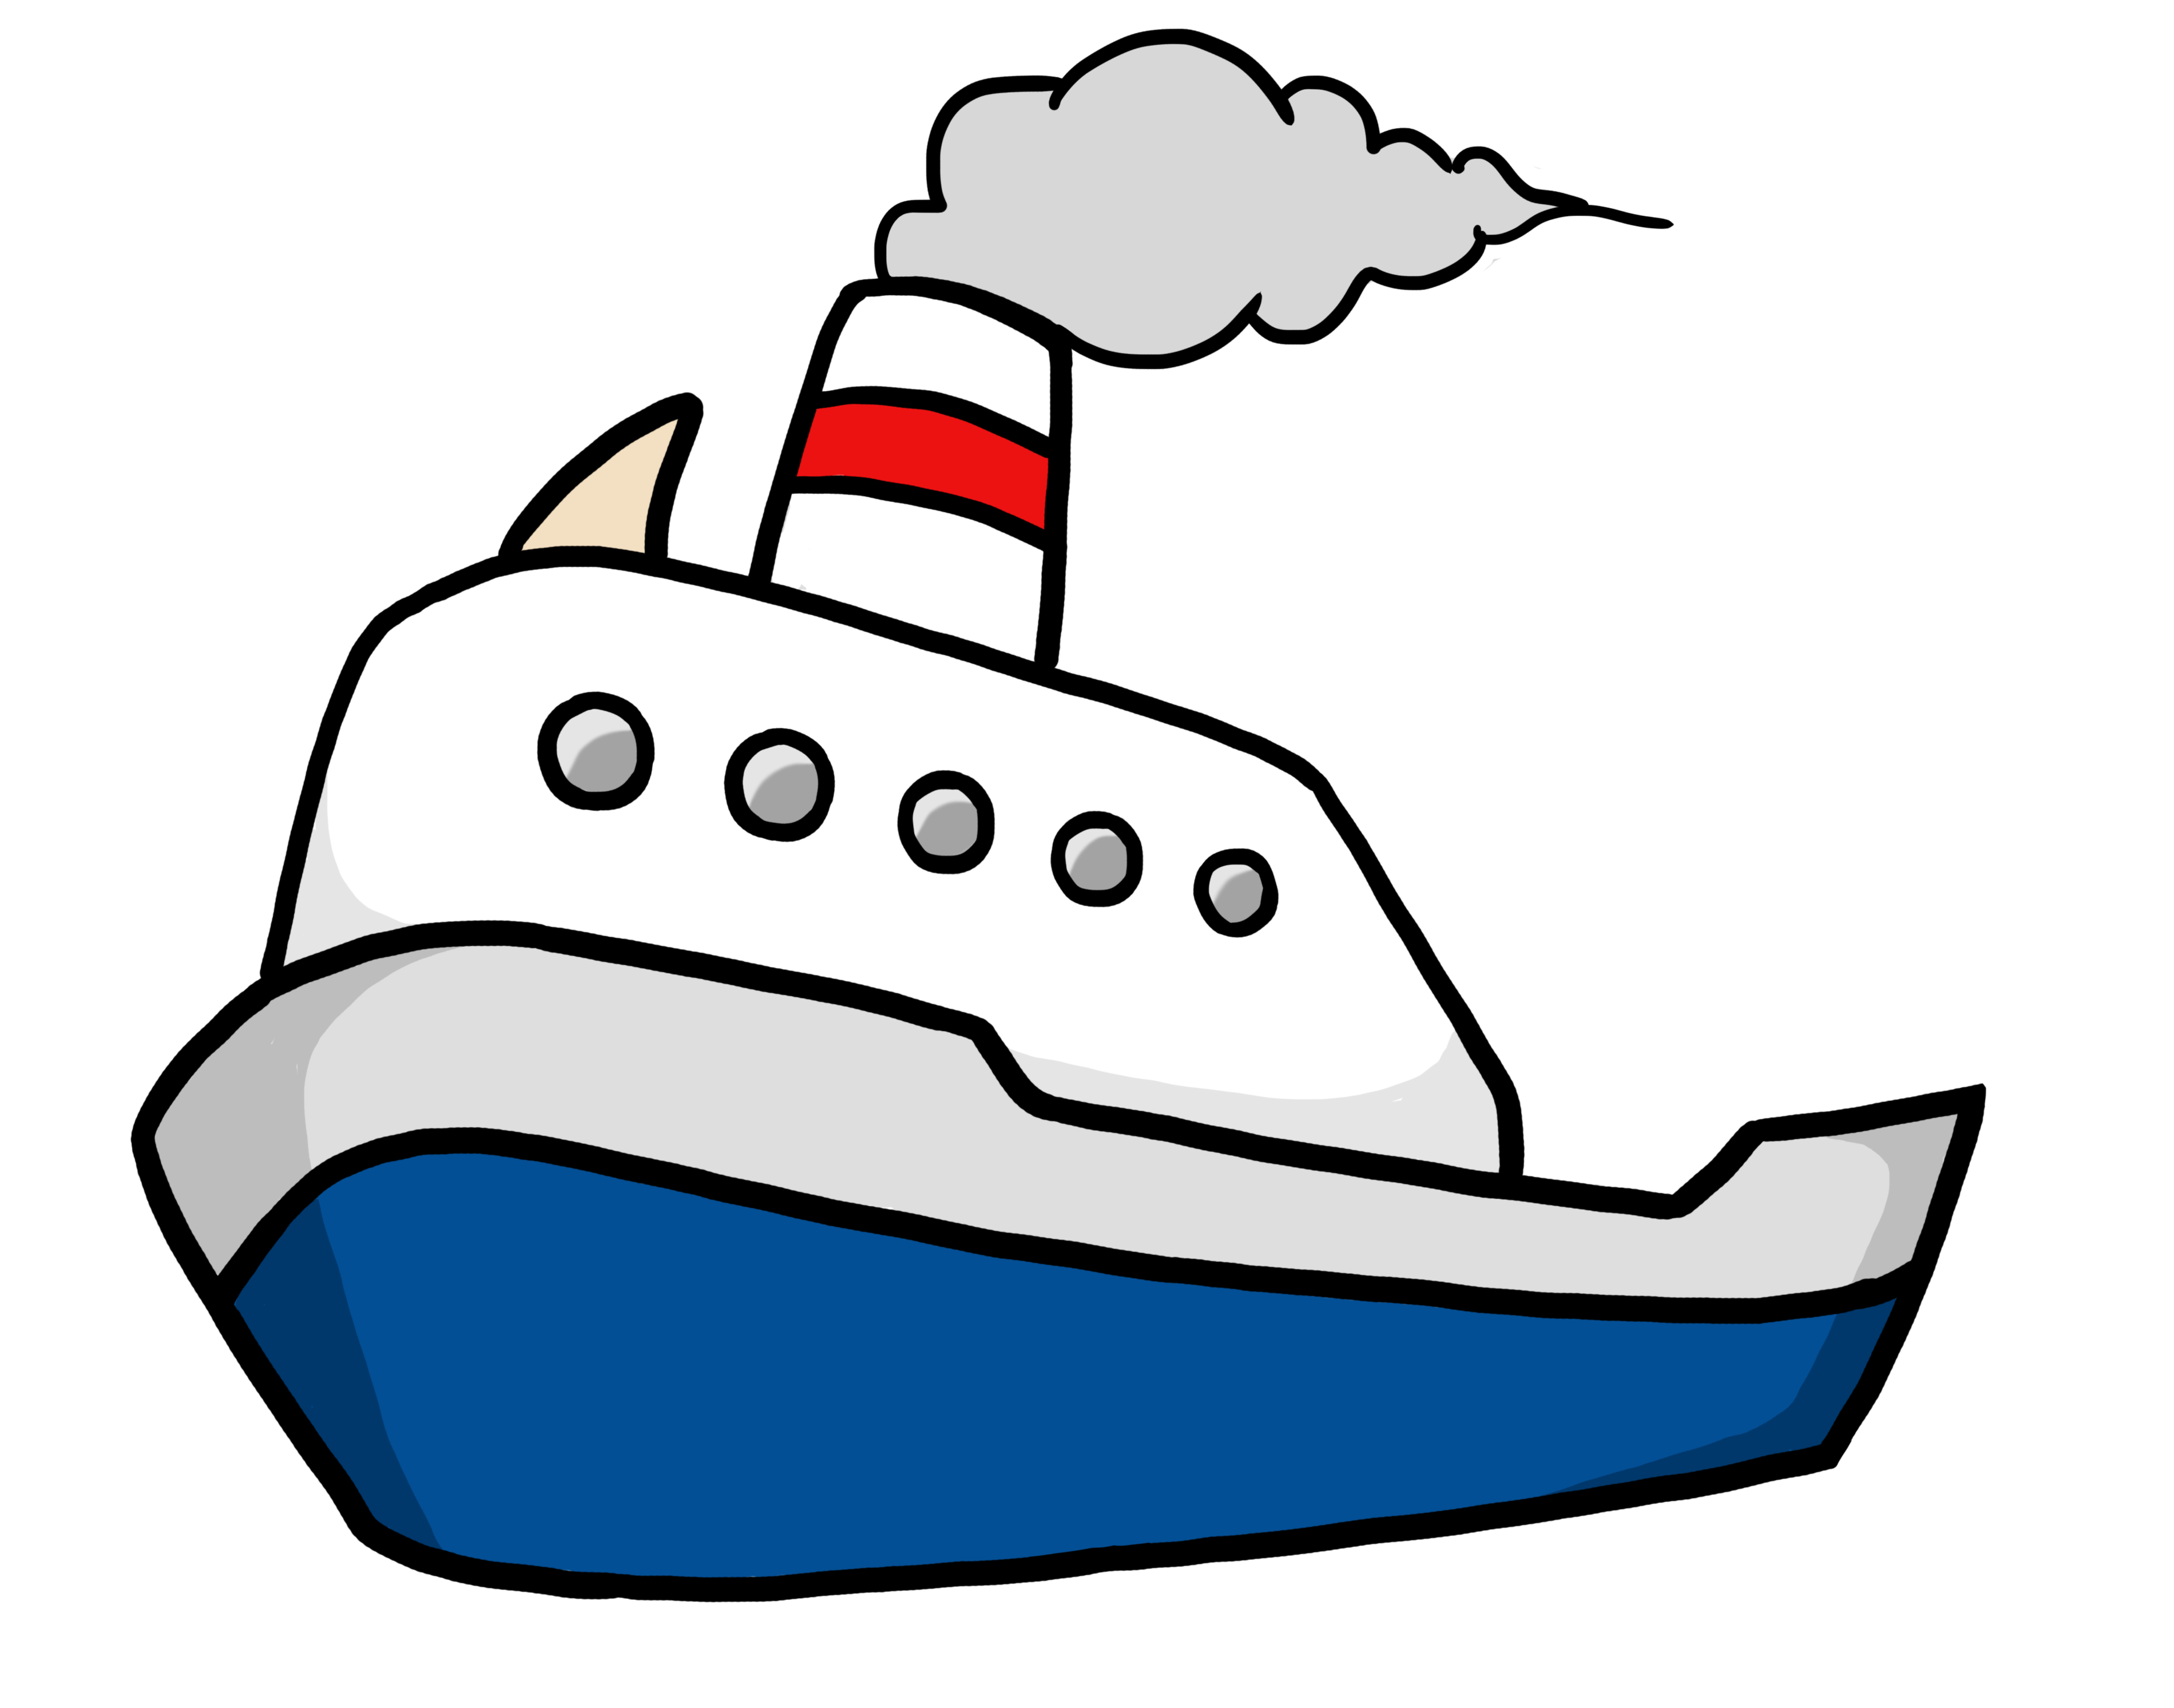 collection of ship. Boat clipart transparent background